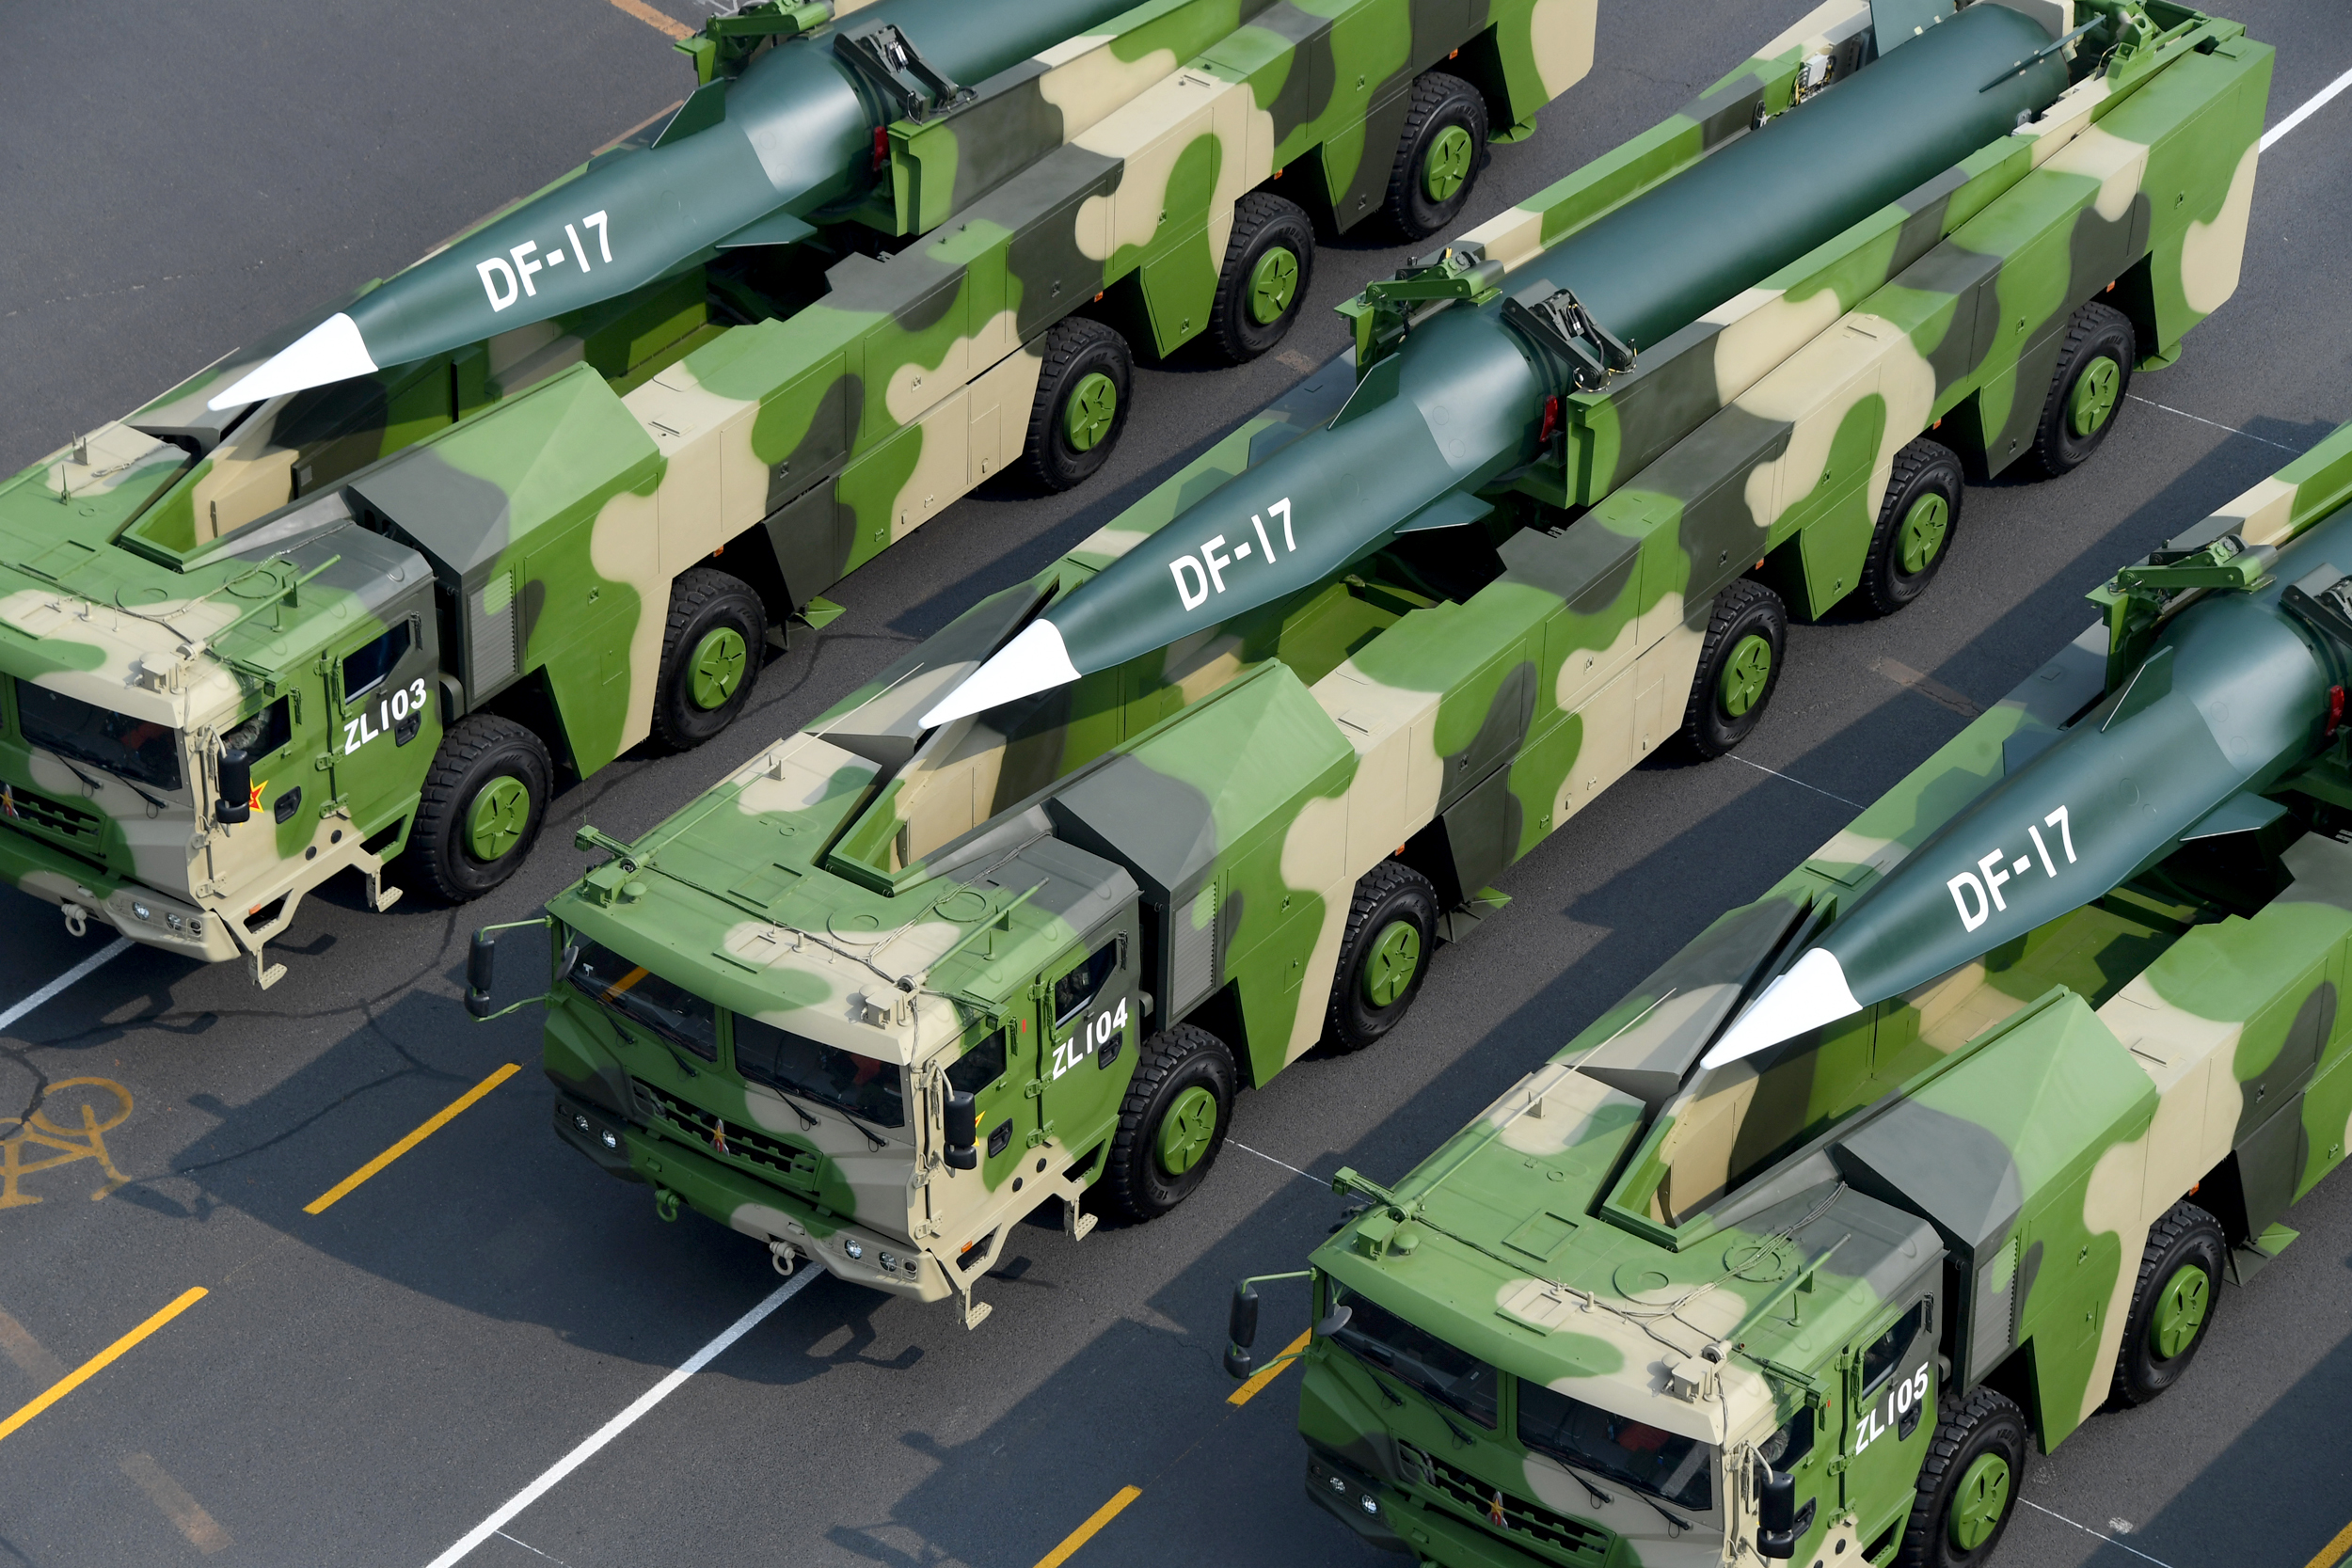 U.S. concern over China nukes buildup after new silos report